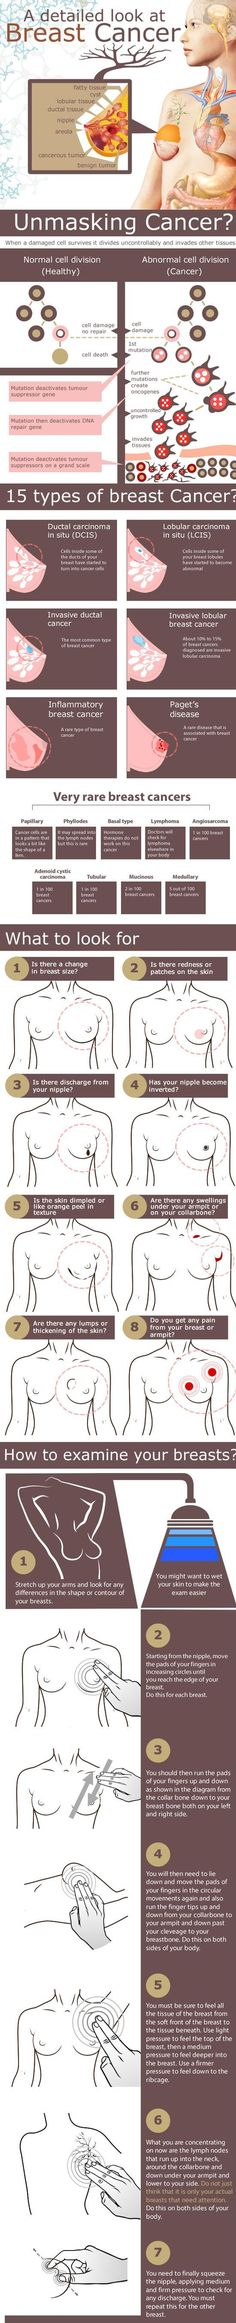 This infographic talks about the 15 types of breast cancer and also shows what to look out for as well as showing how to examine your breasts yourself Source: www.infographicjournal.com